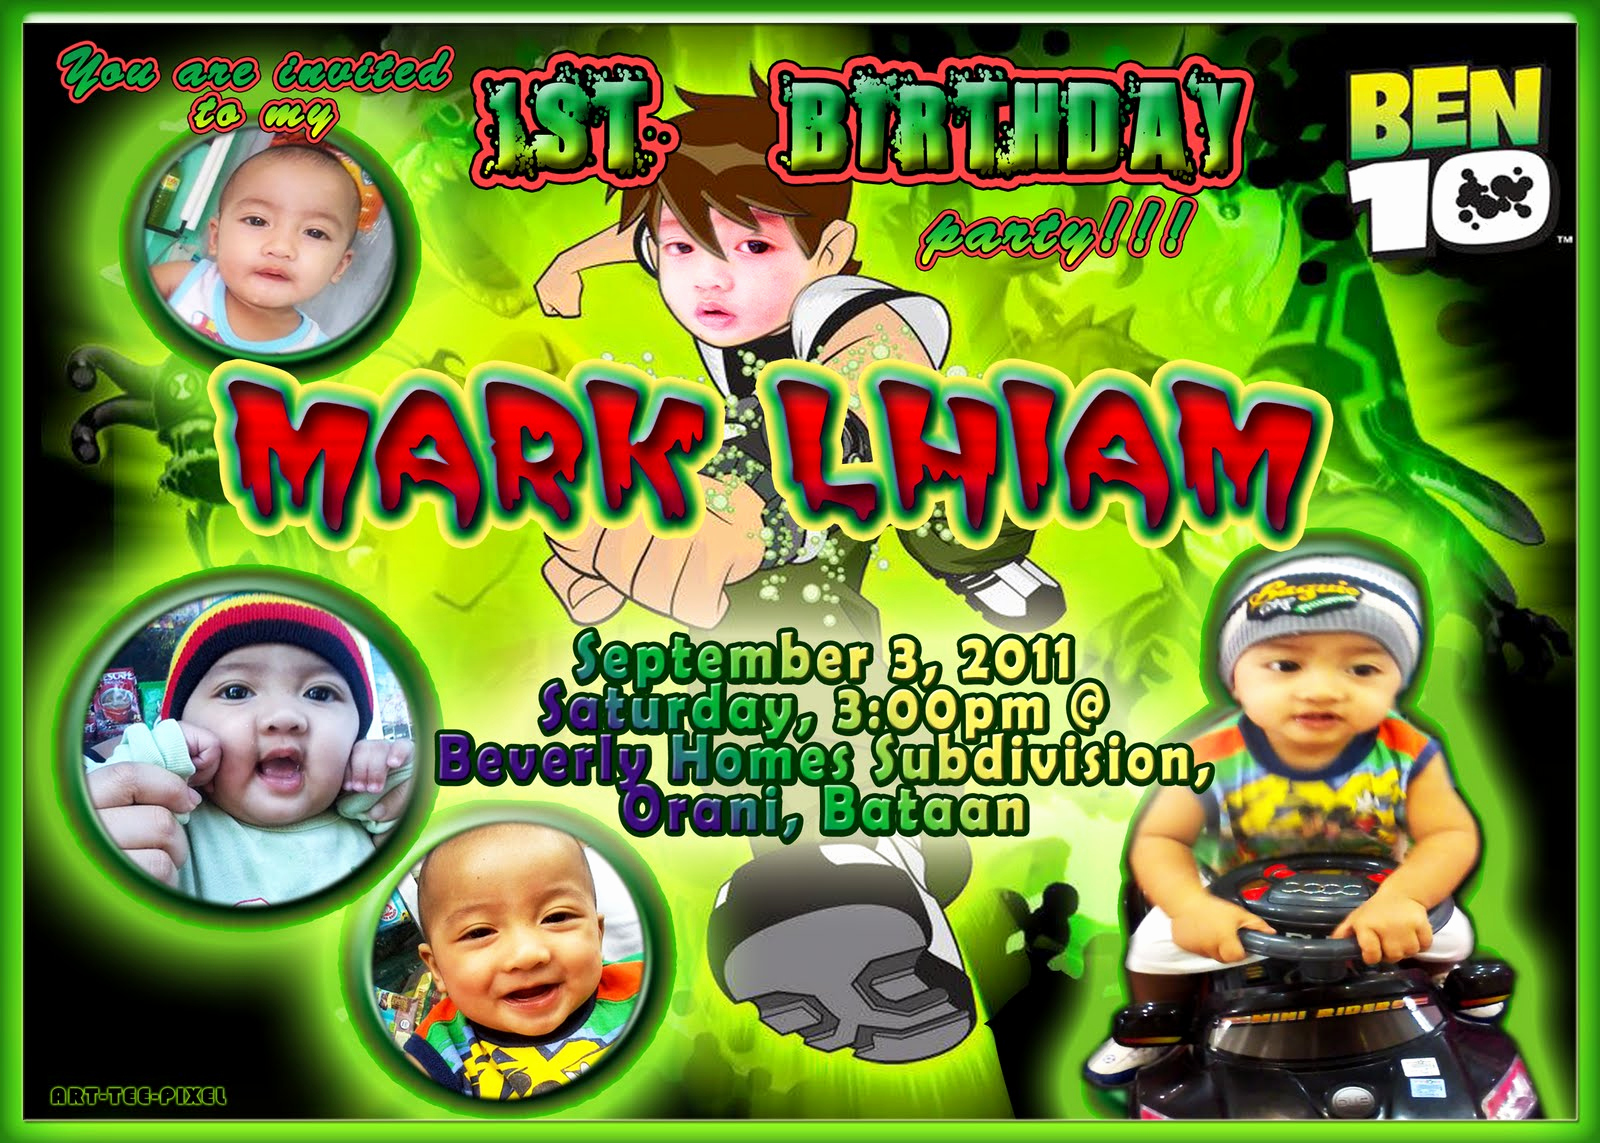 Ben 10 Birthday Invitation Lovely Art Tee Pixel Lay Out Making and Video Editing Ben 10